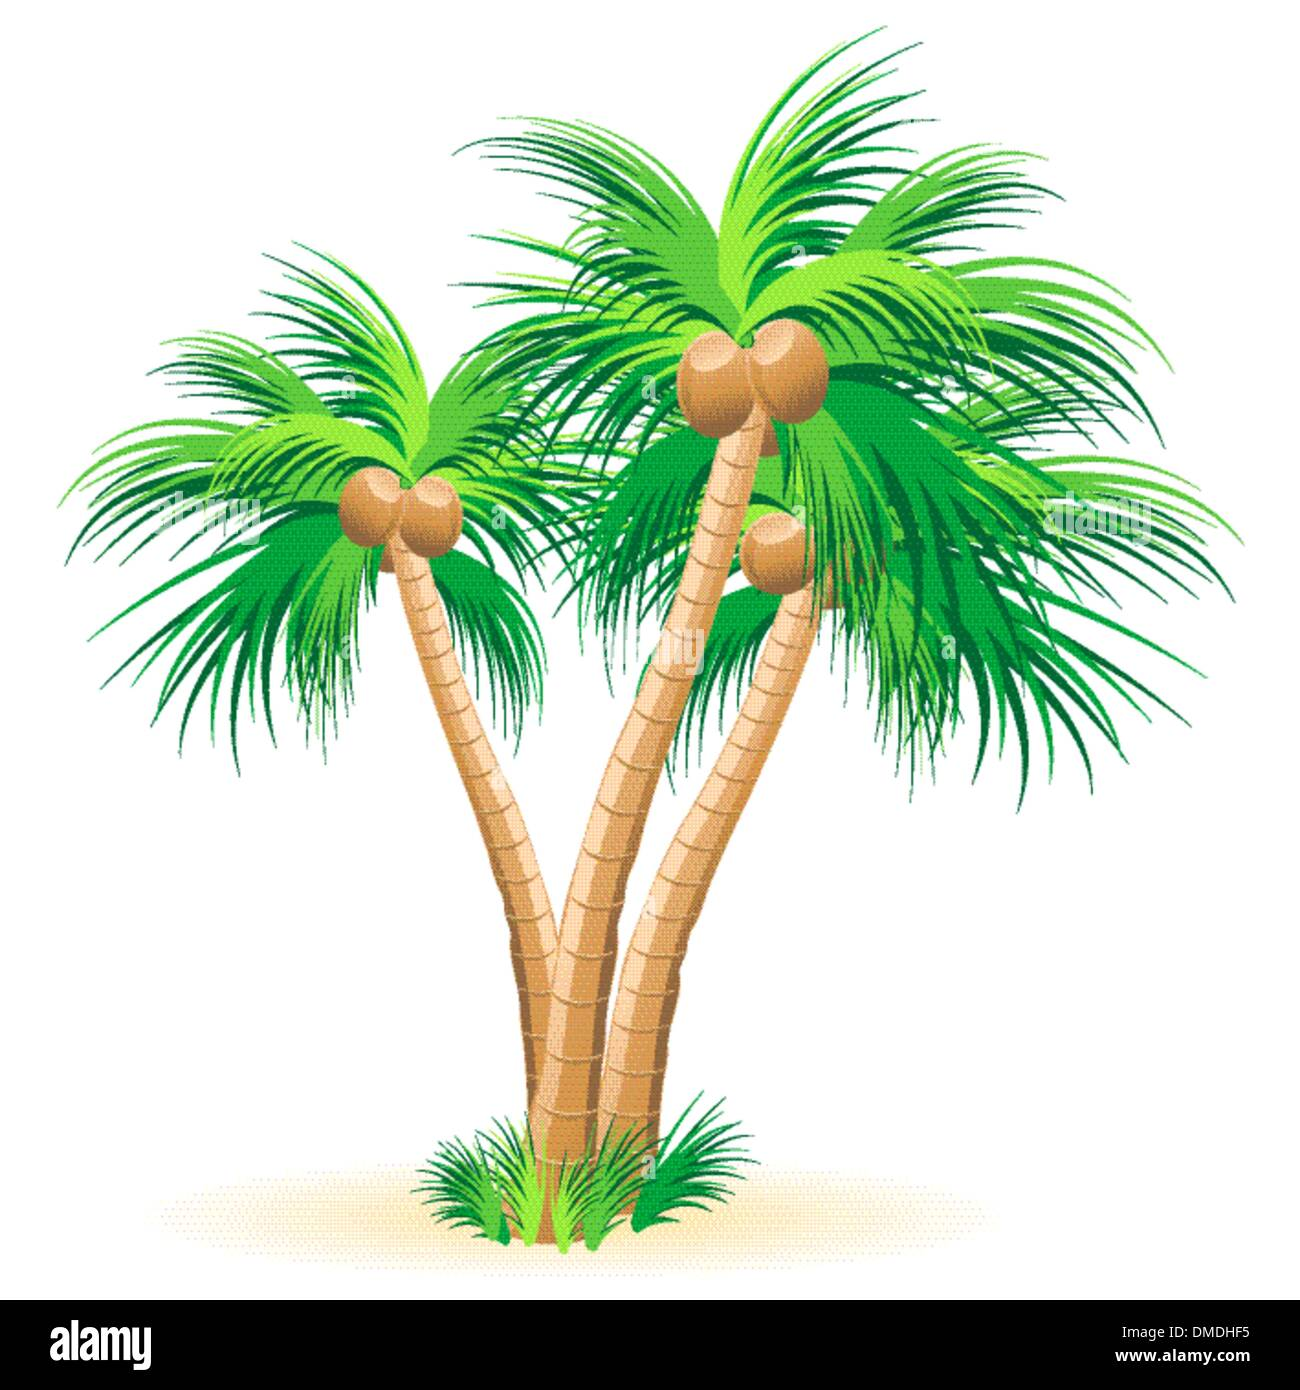 Tropical palm trees - Stock Image